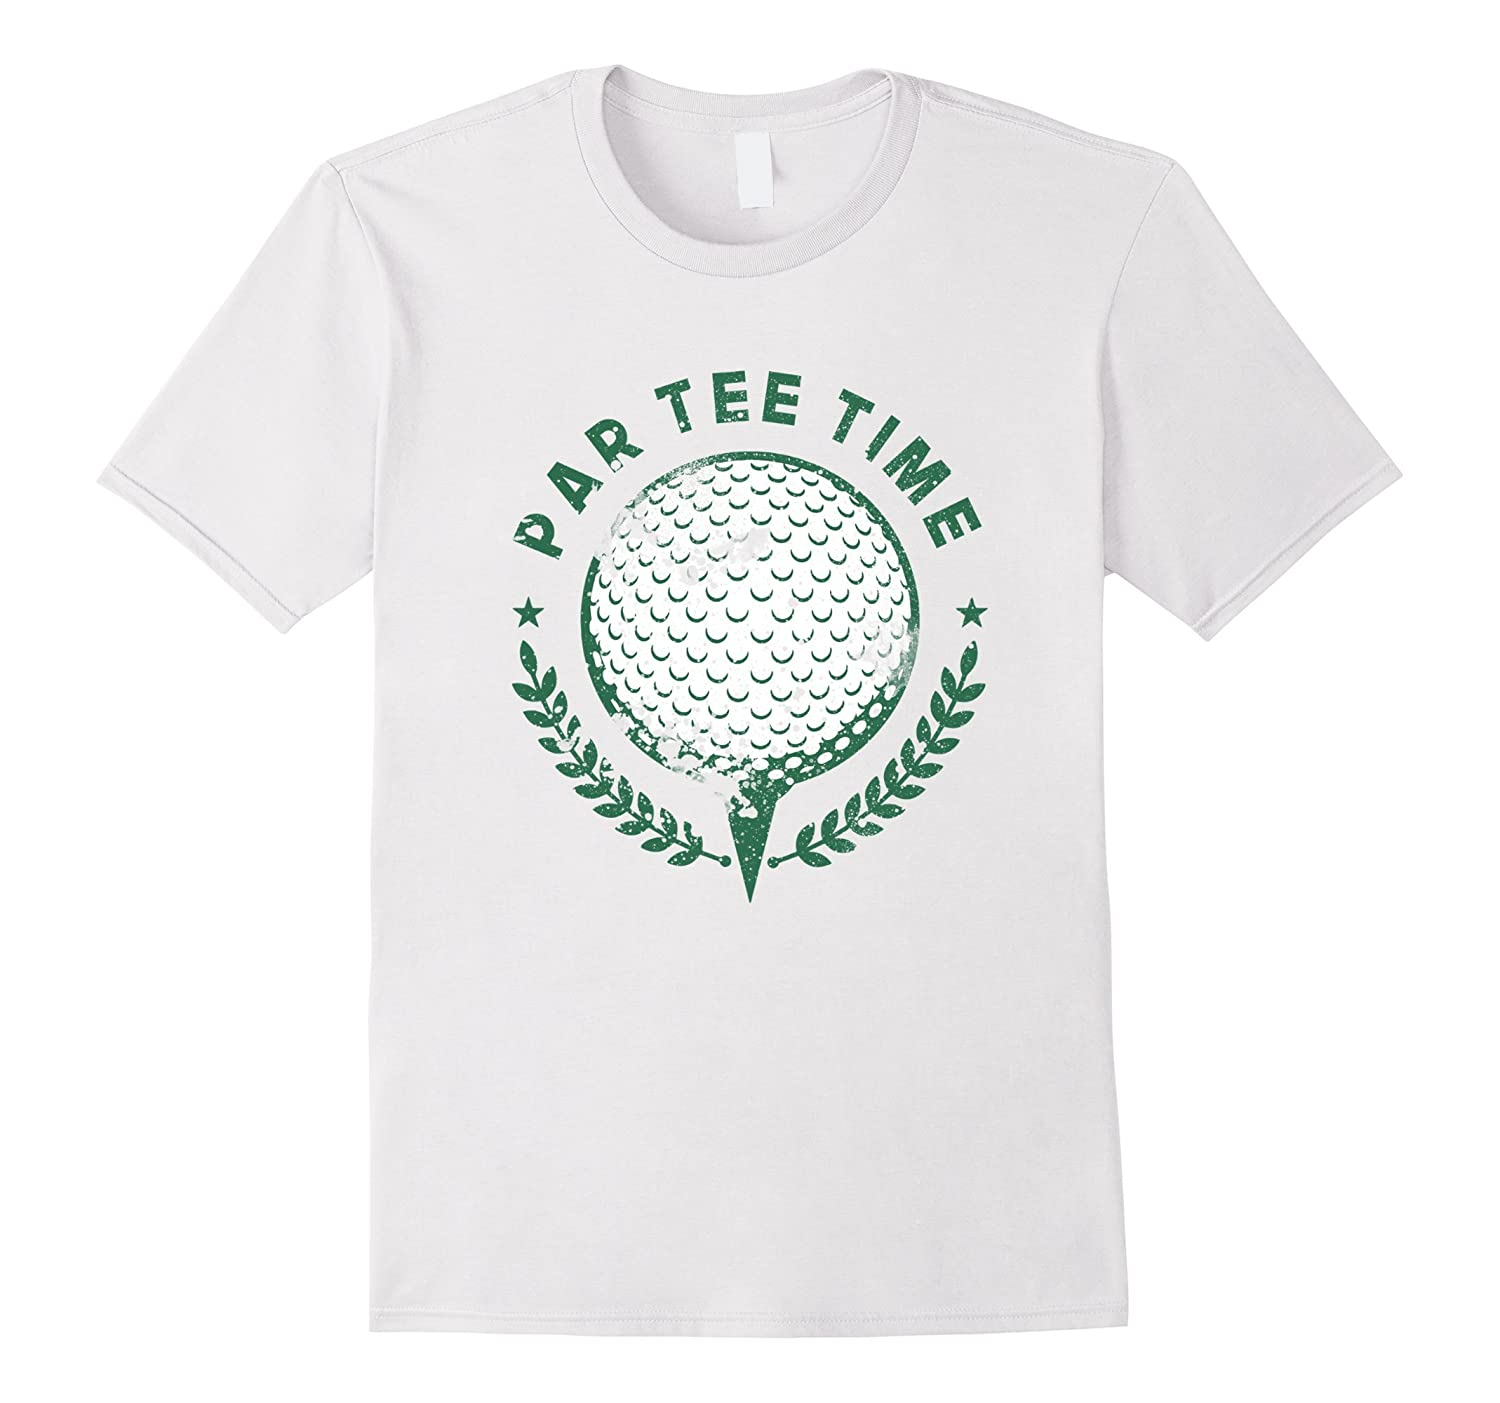 how to ask for a tee time